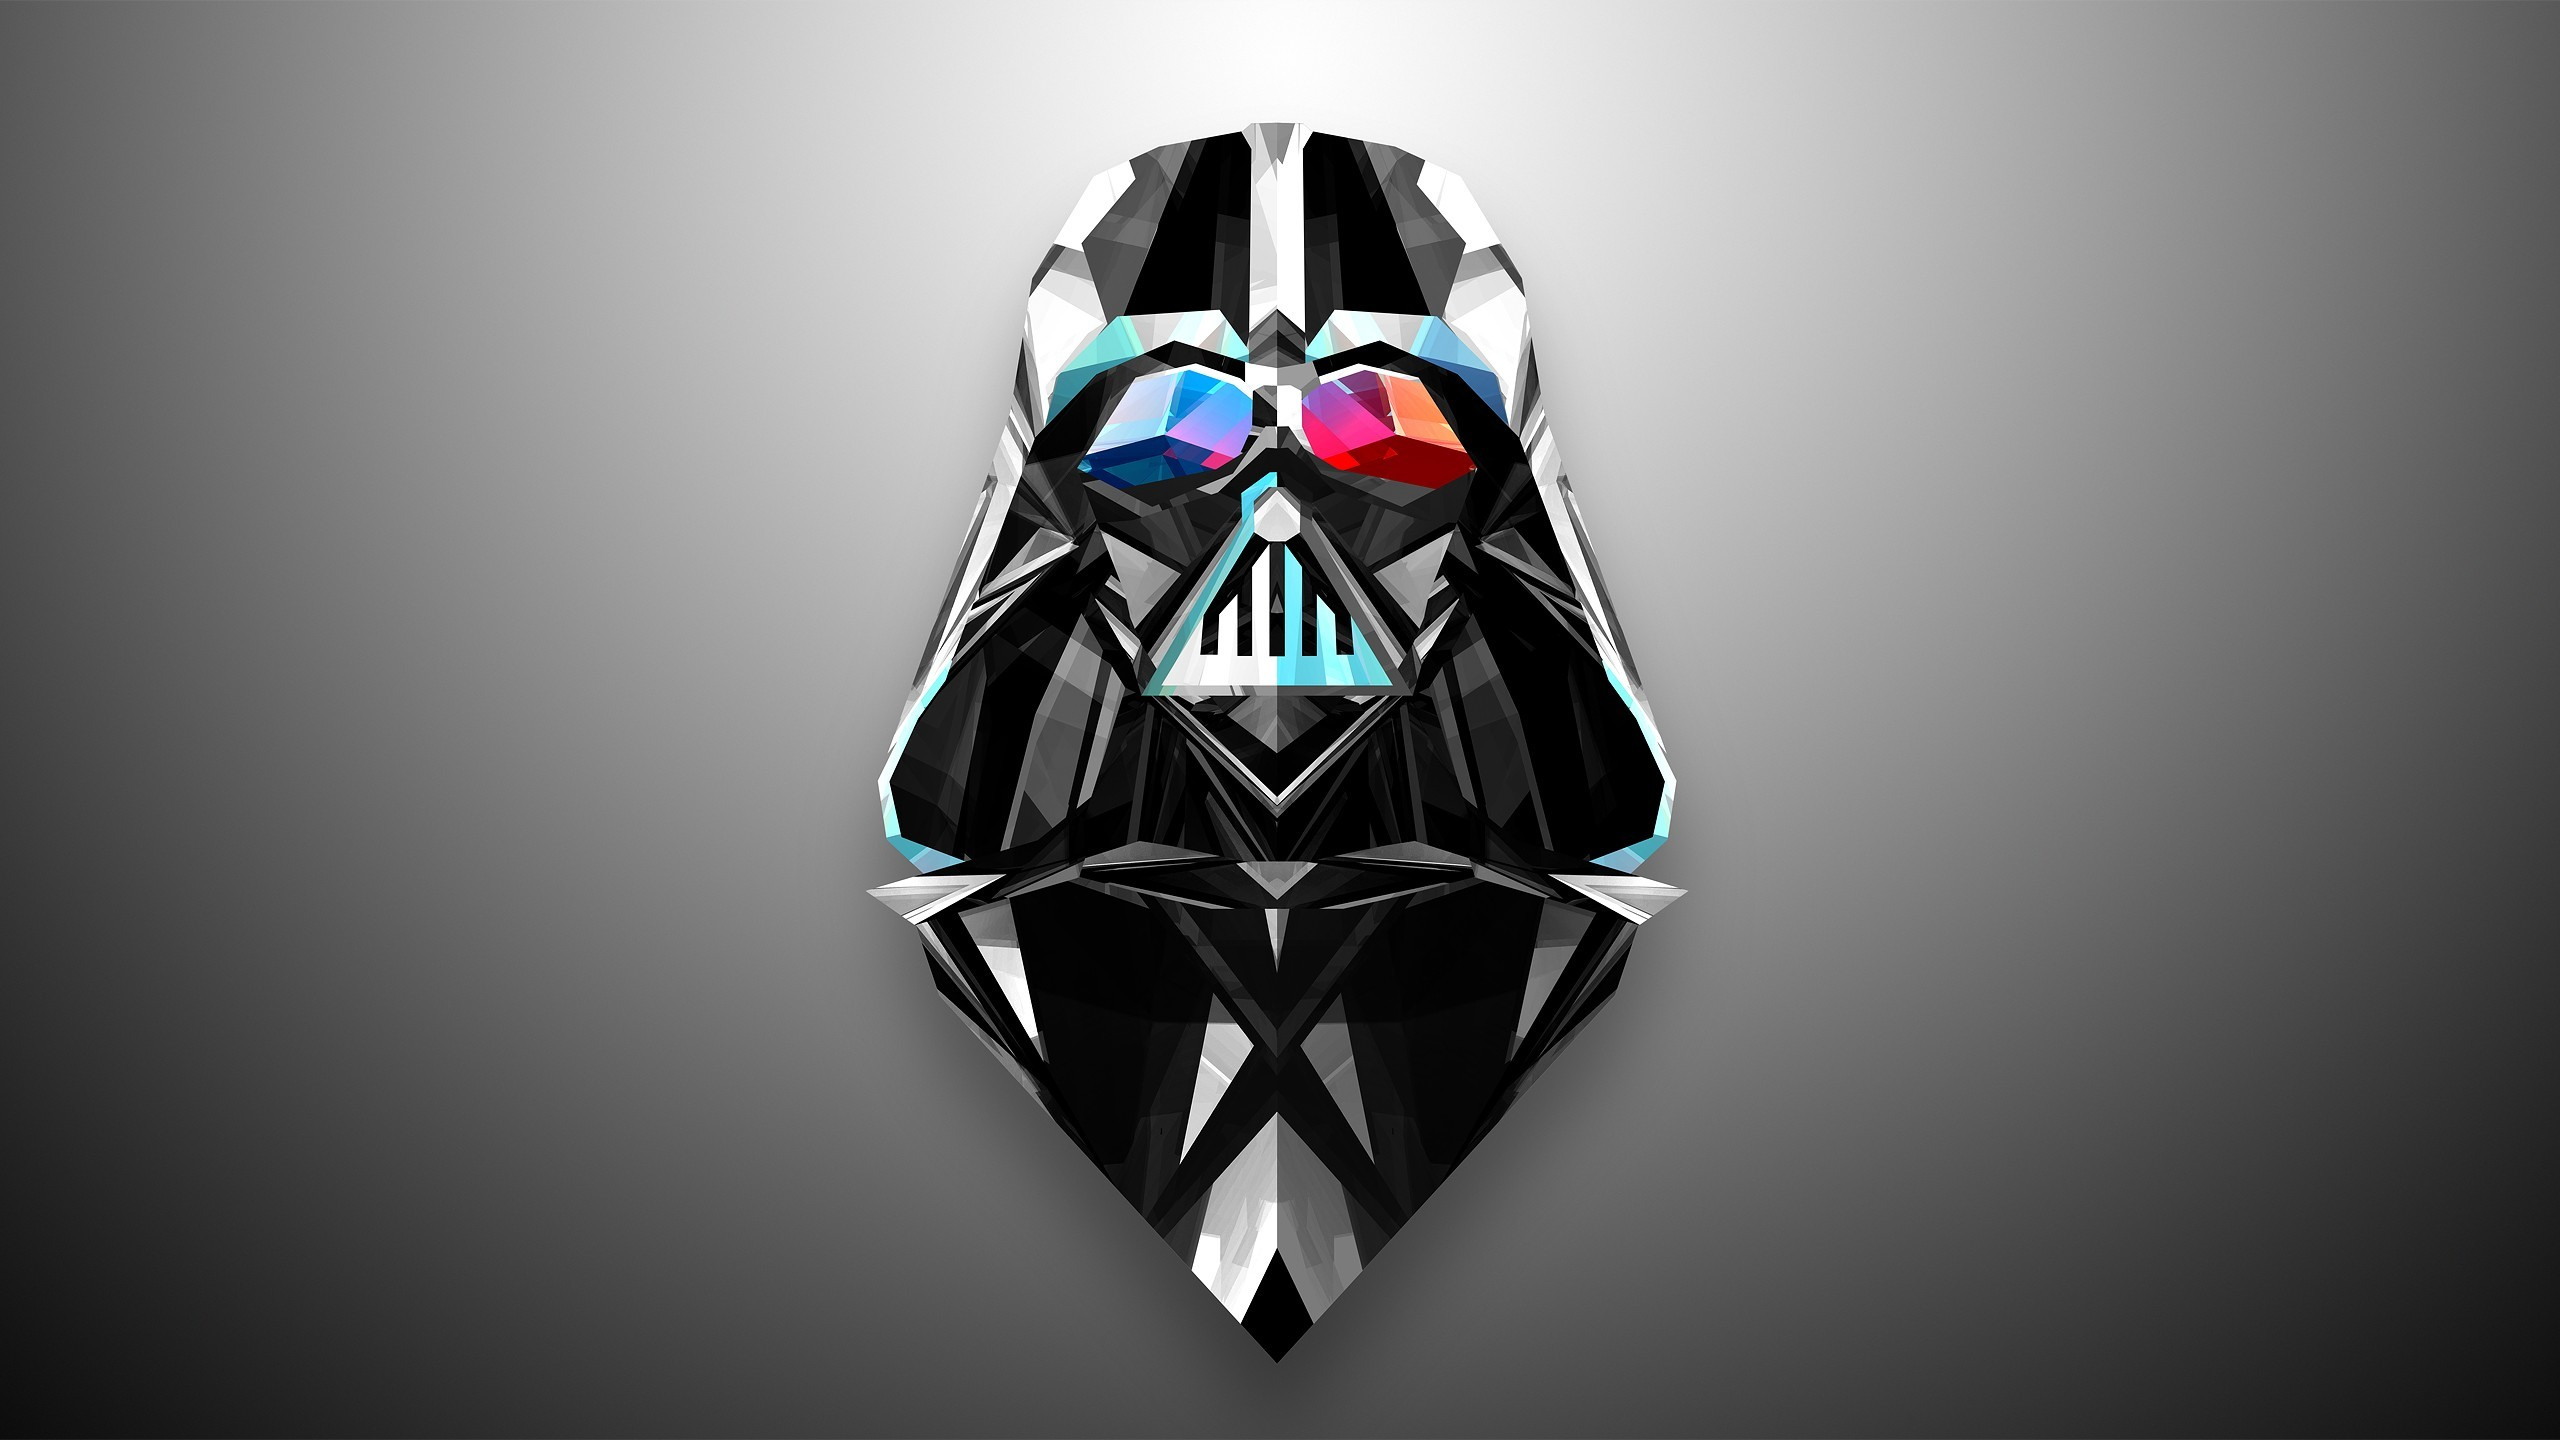 Cool Star Wars Wallpapers HD (68+ images)